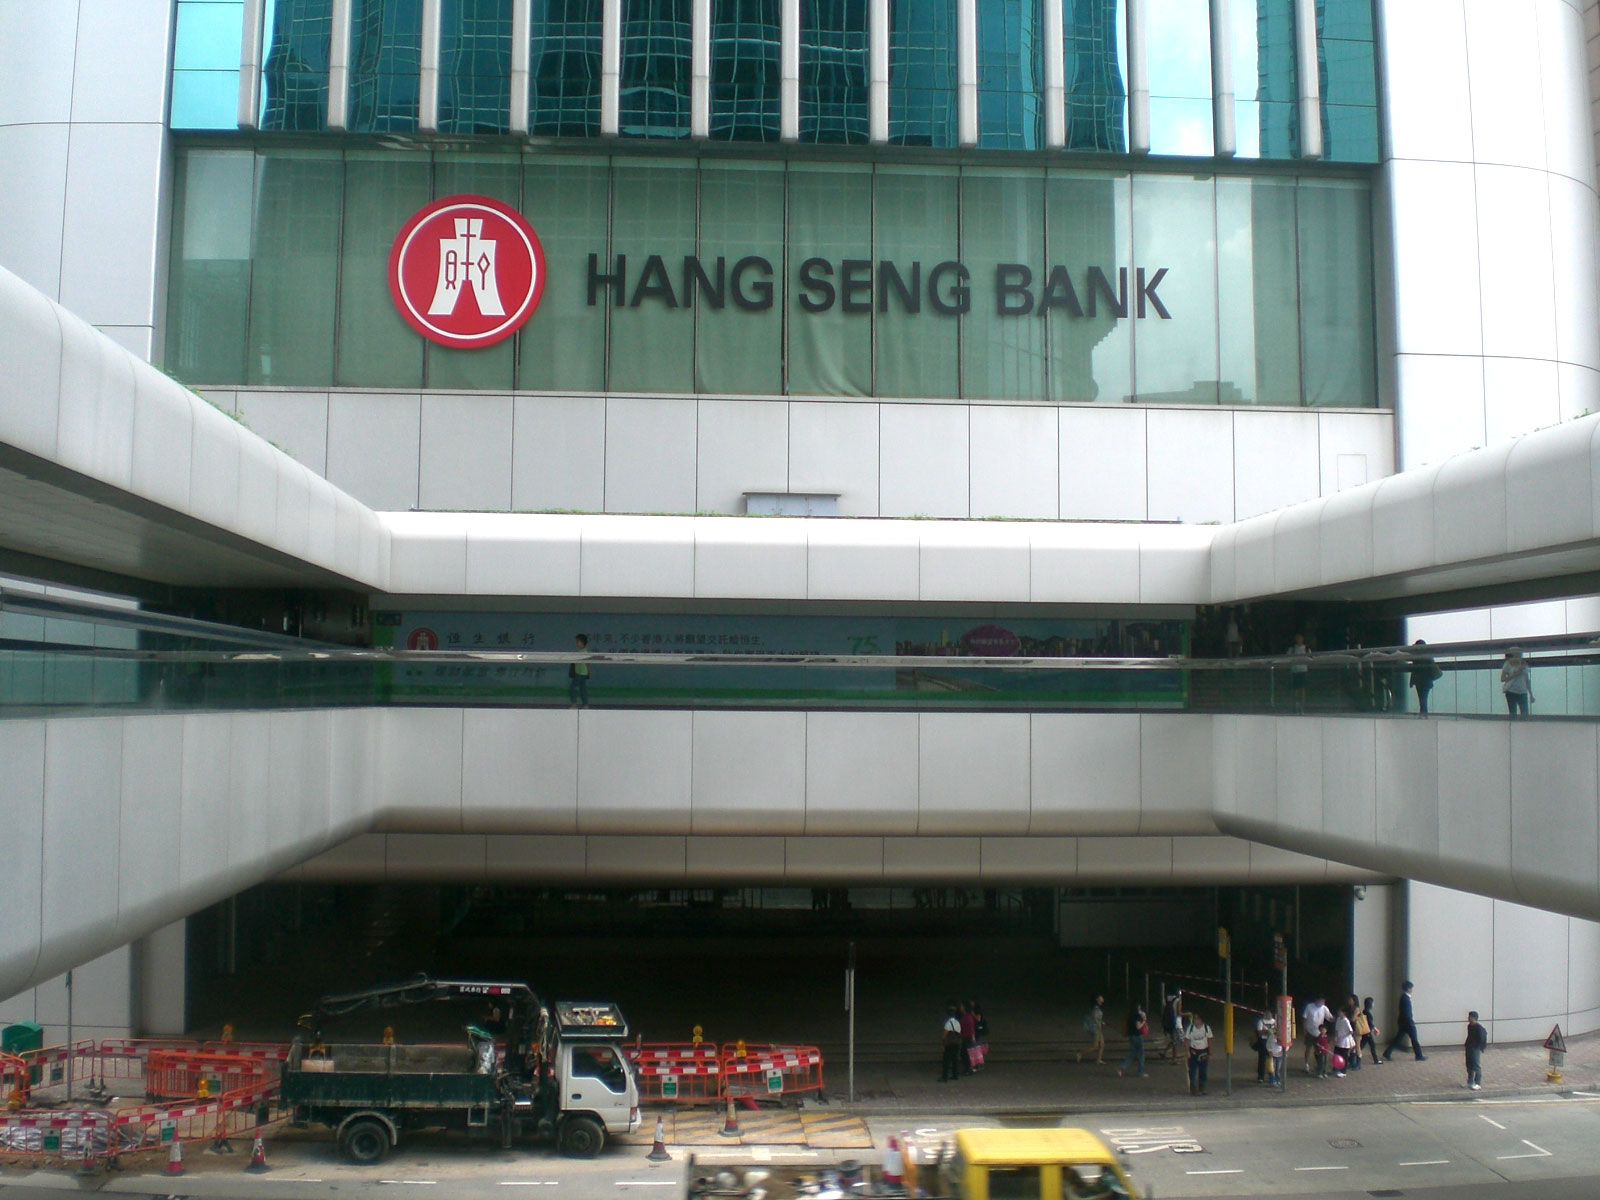 HK_Central_Connaught_Road_C_Hang_Seng_Bank_Building_a.jpg